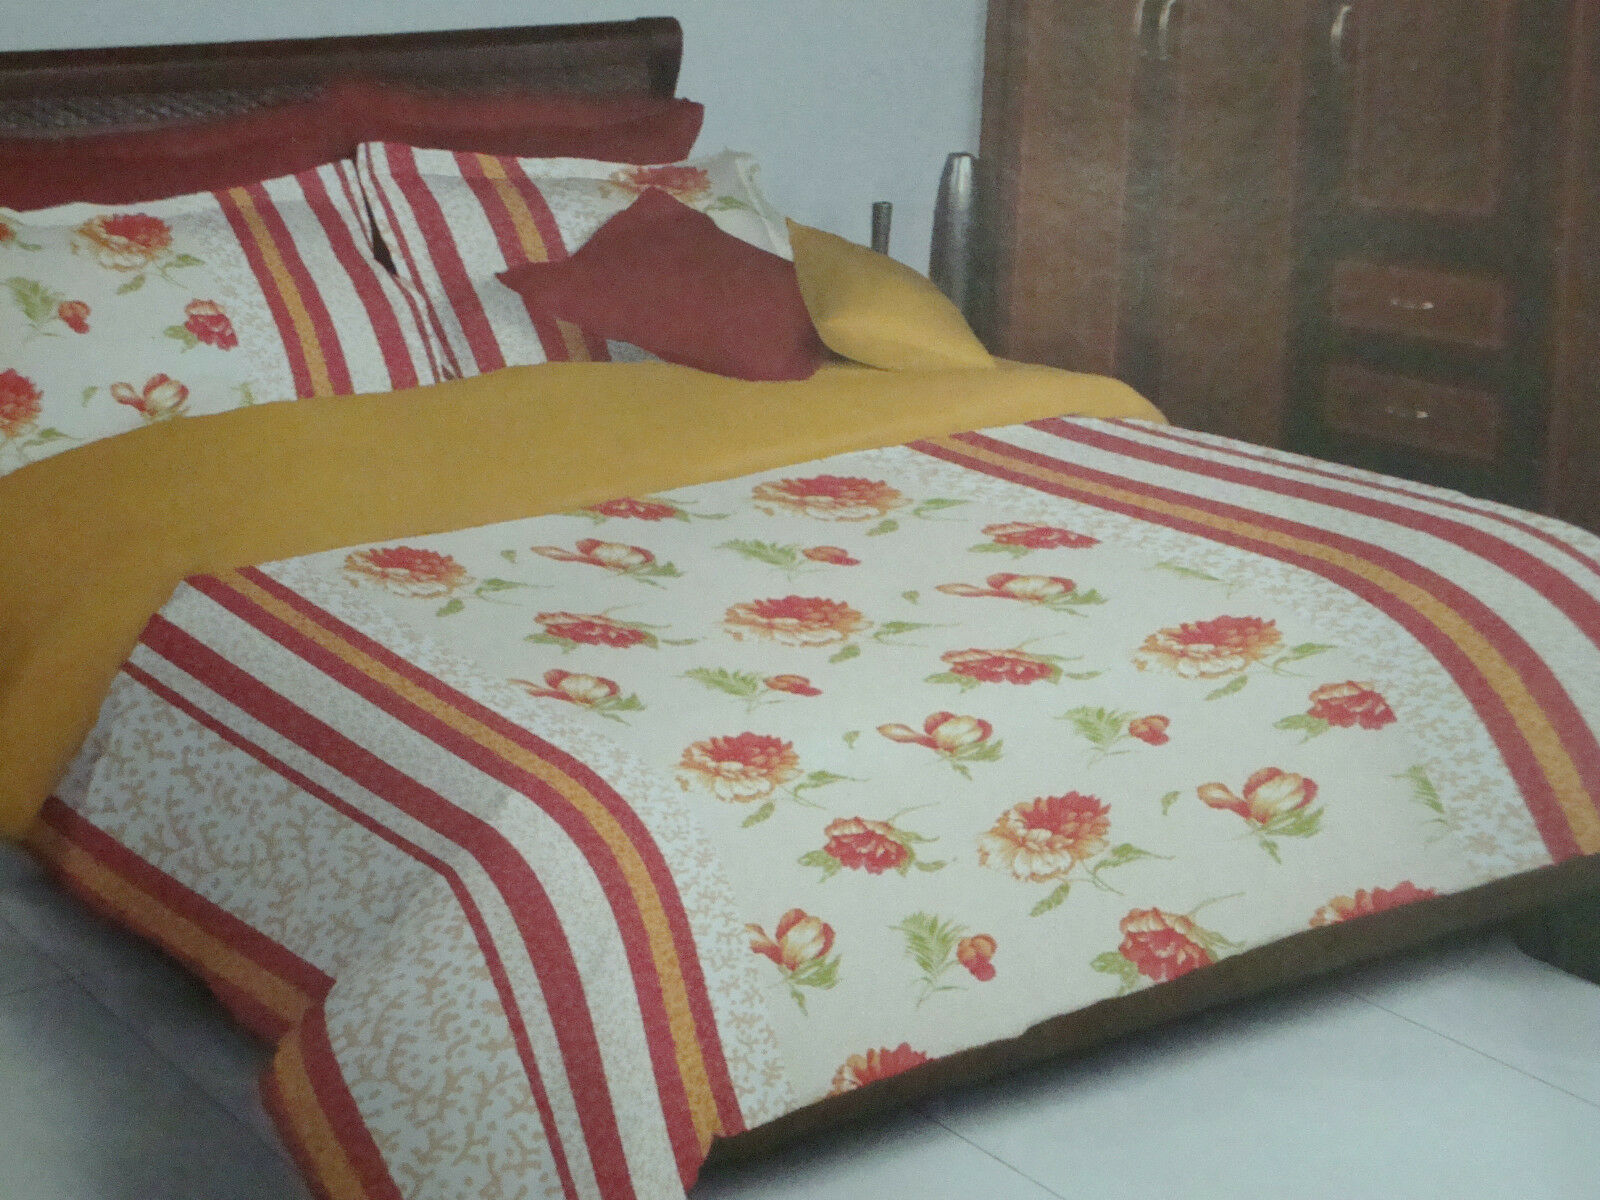 Bed sheet Textile Home decore home furnishing Bed room cotton cloth pillow cover